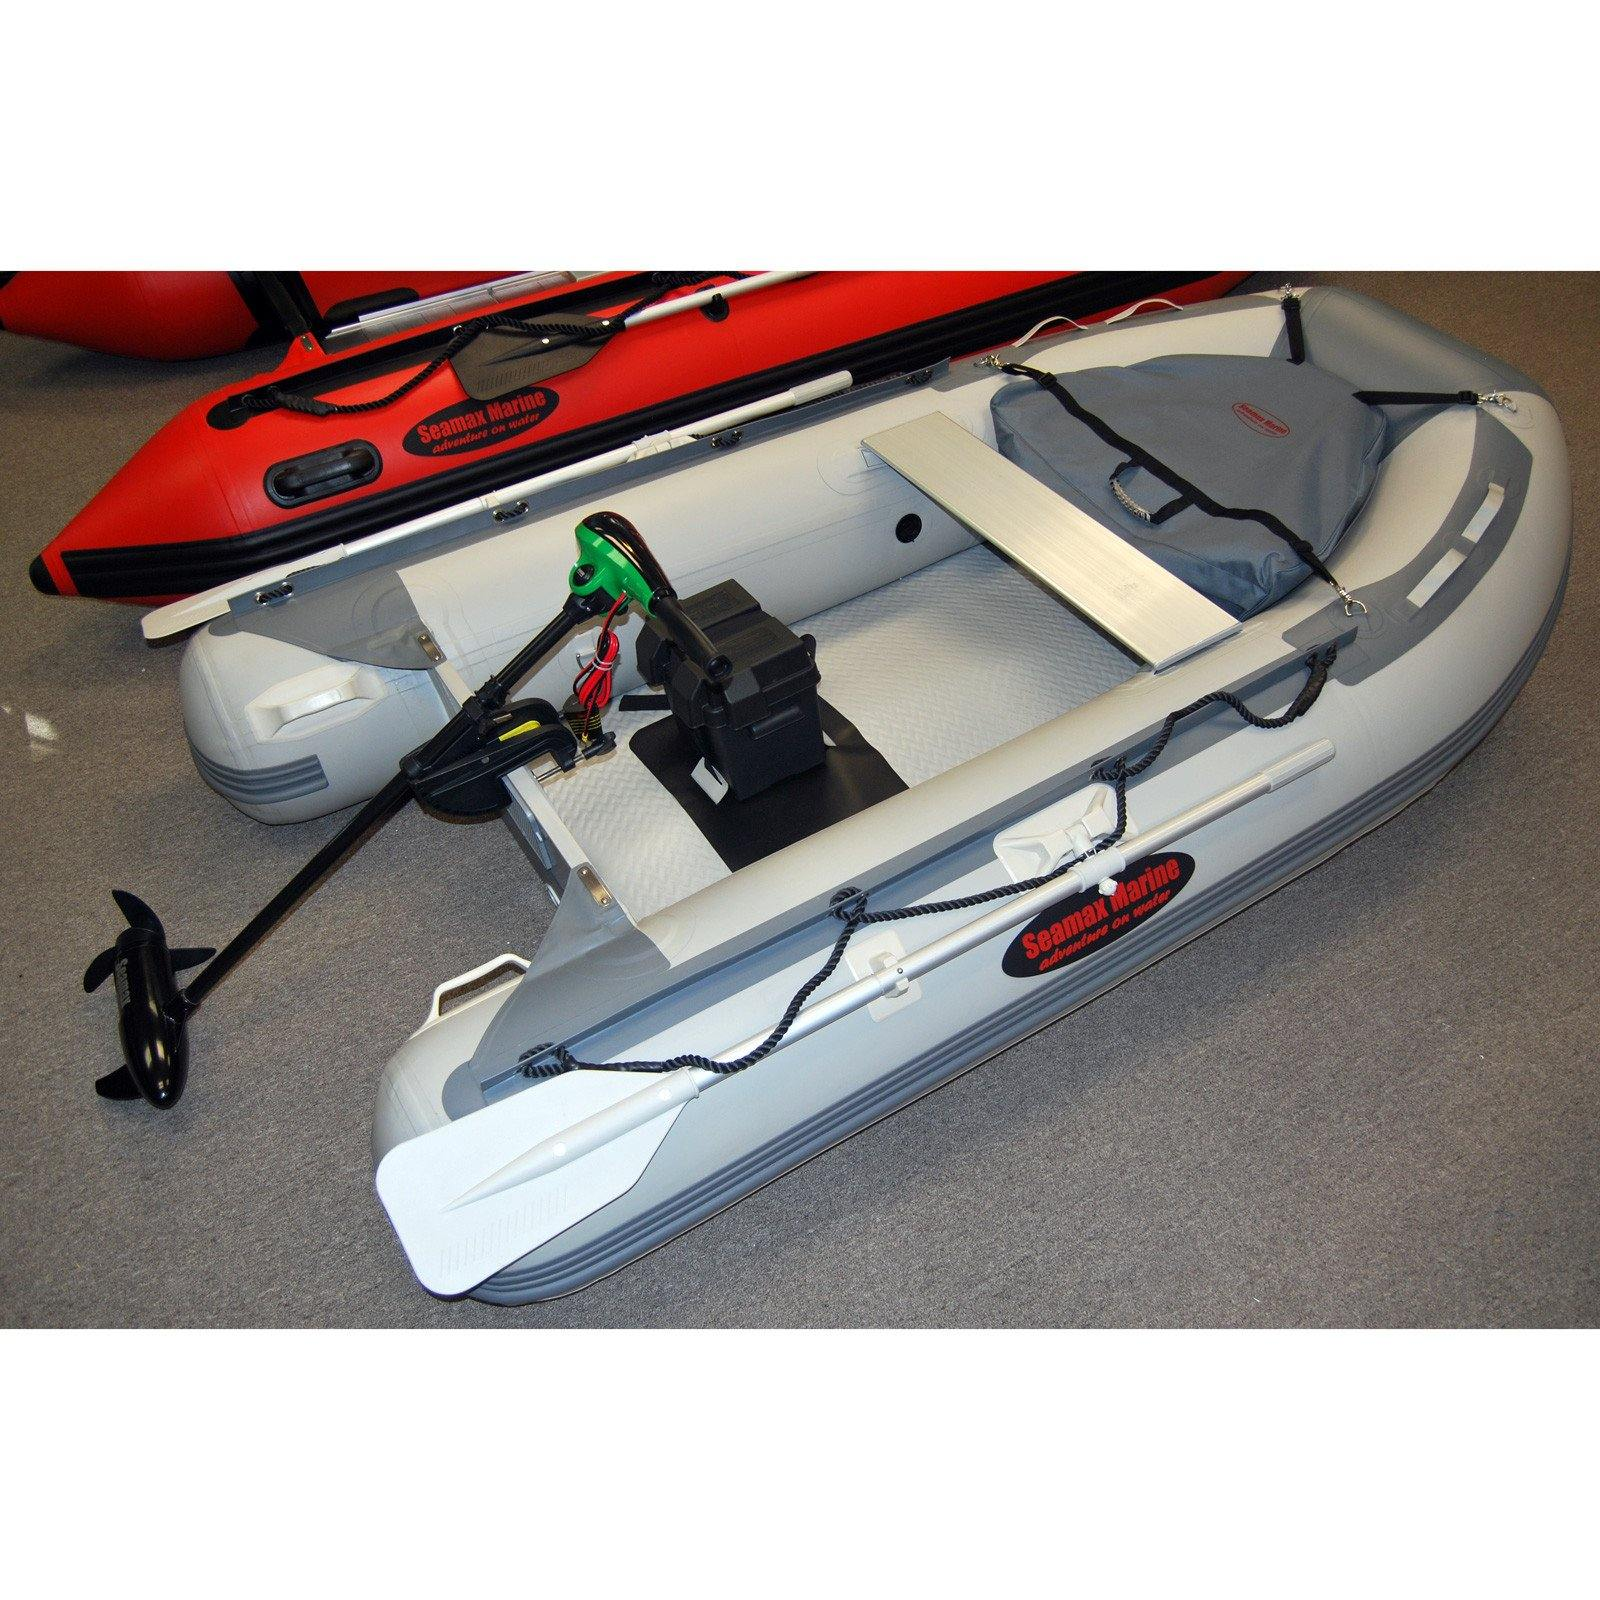 Boat accessories seamax marine deluxe bow bag for inflatable boats seamax marine ccuart Image collections